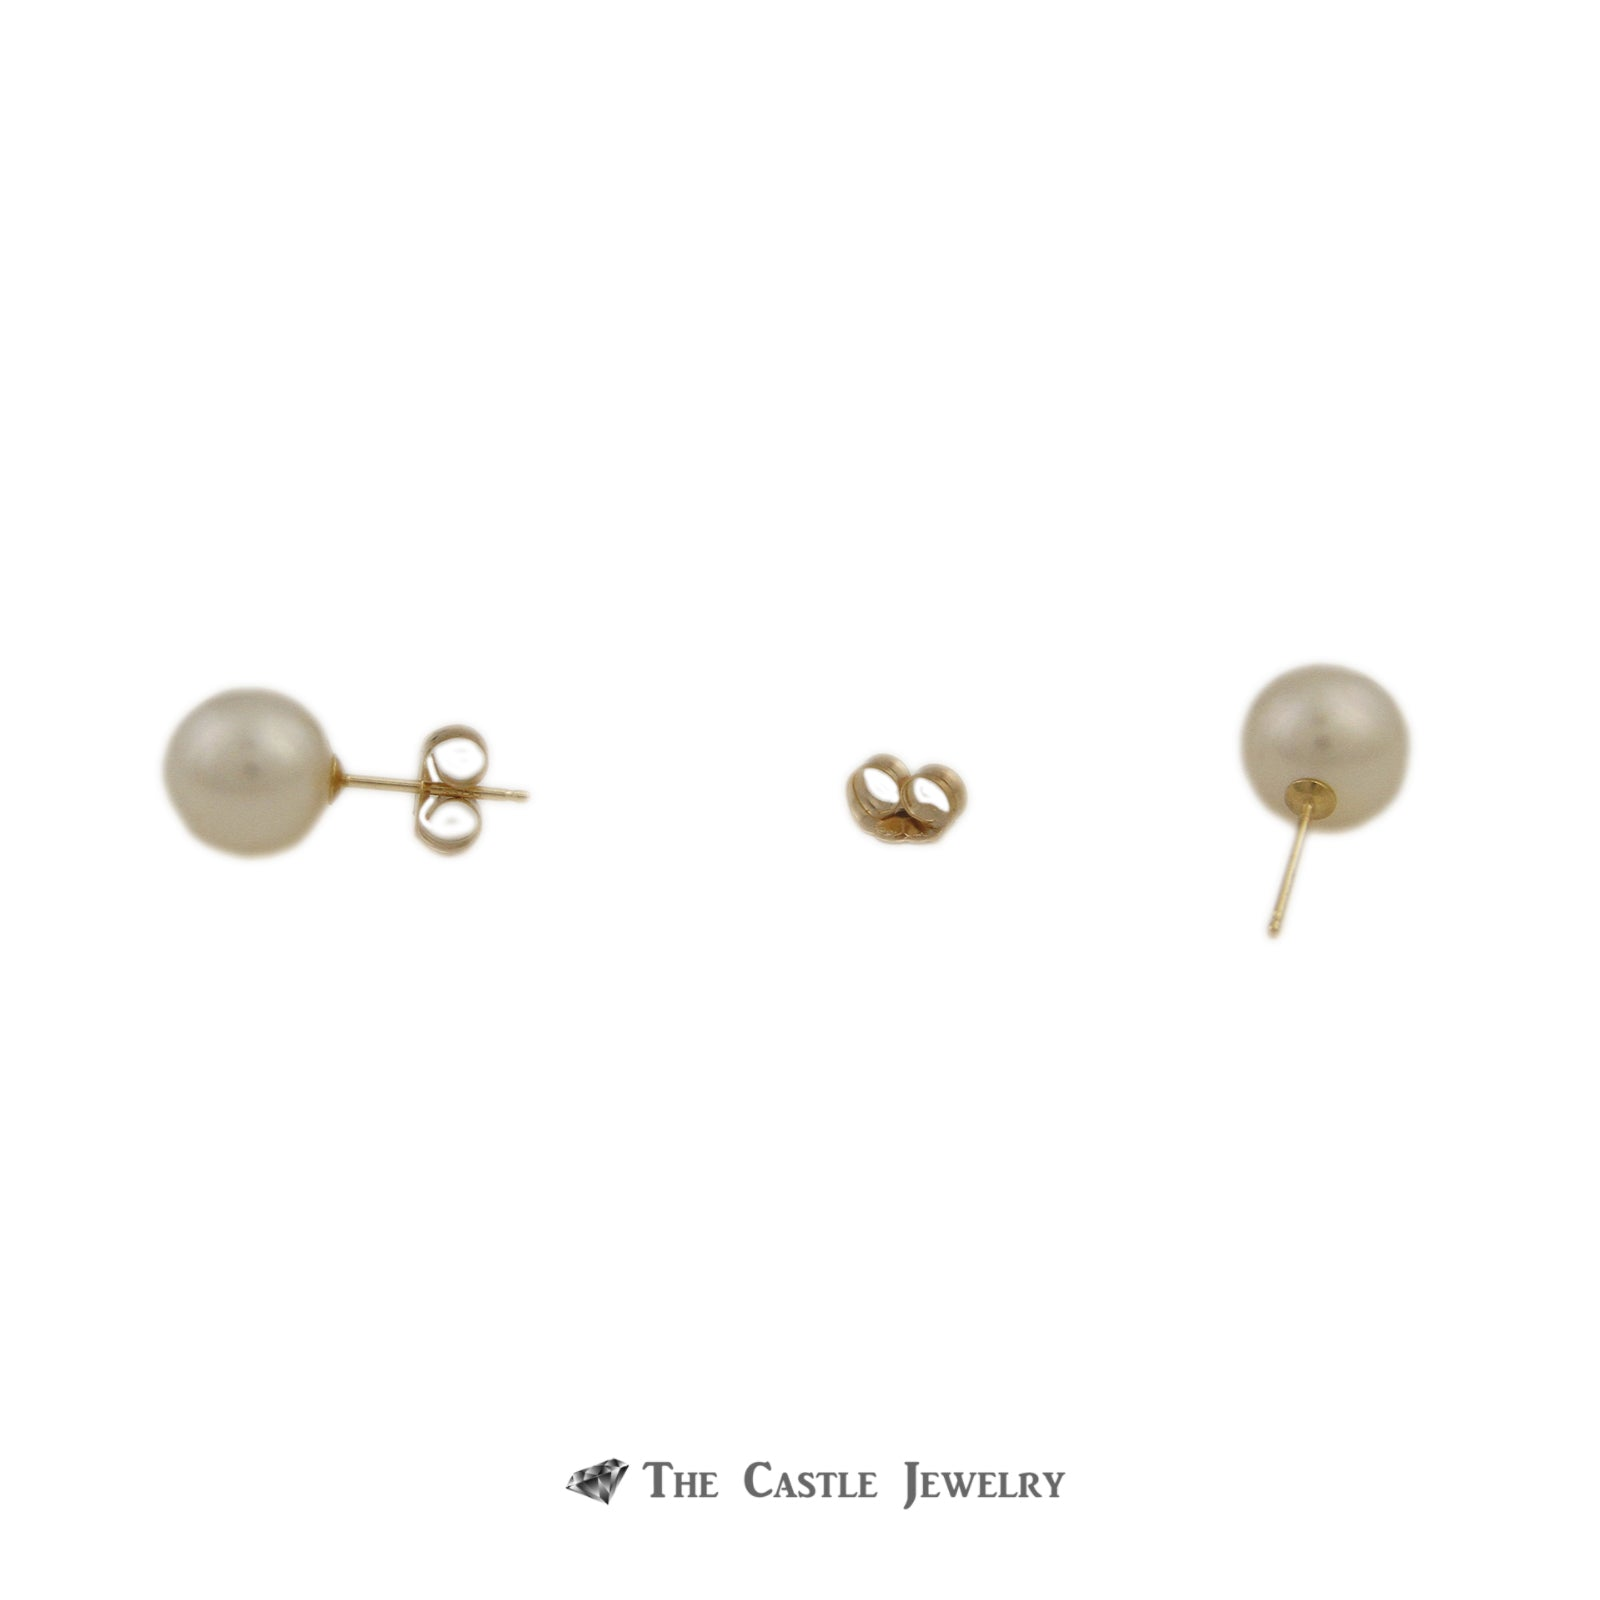 Pearl Earrings with 8-8.5mm Pearls in 14K Yellow Gold-1